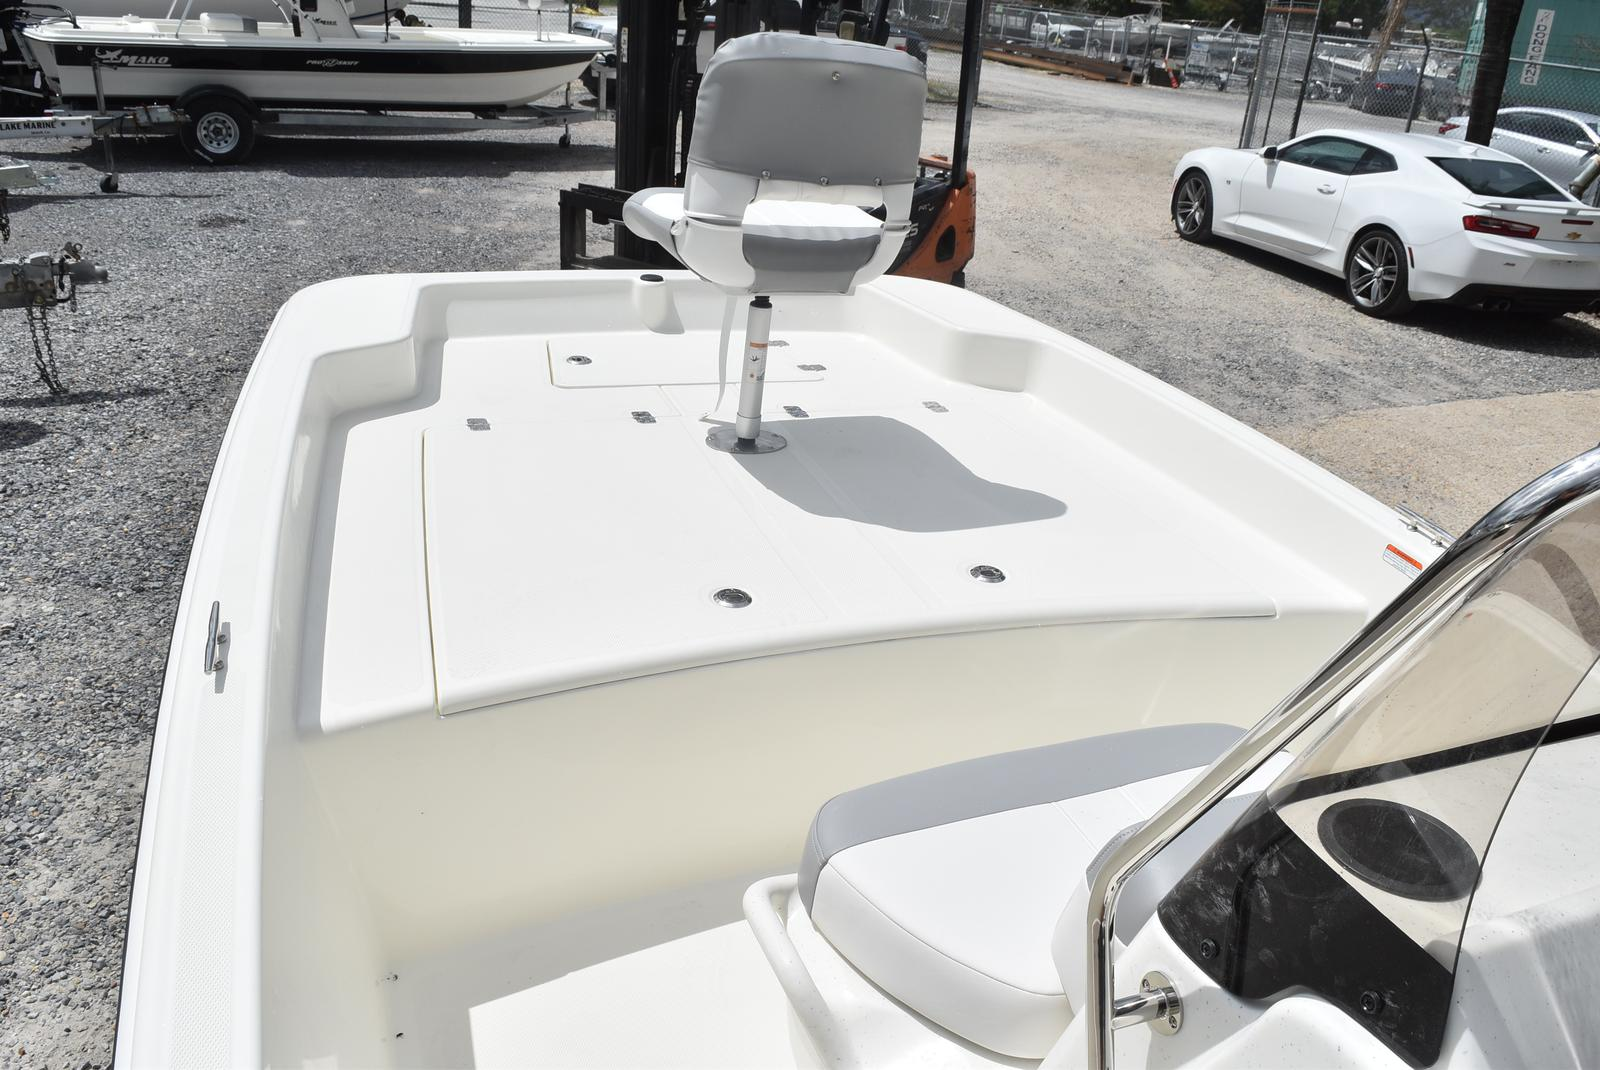 2020 Mako boat for sale, model of the boat is Pro Skiff 17, 75 ELPT & Image # 448 of 702